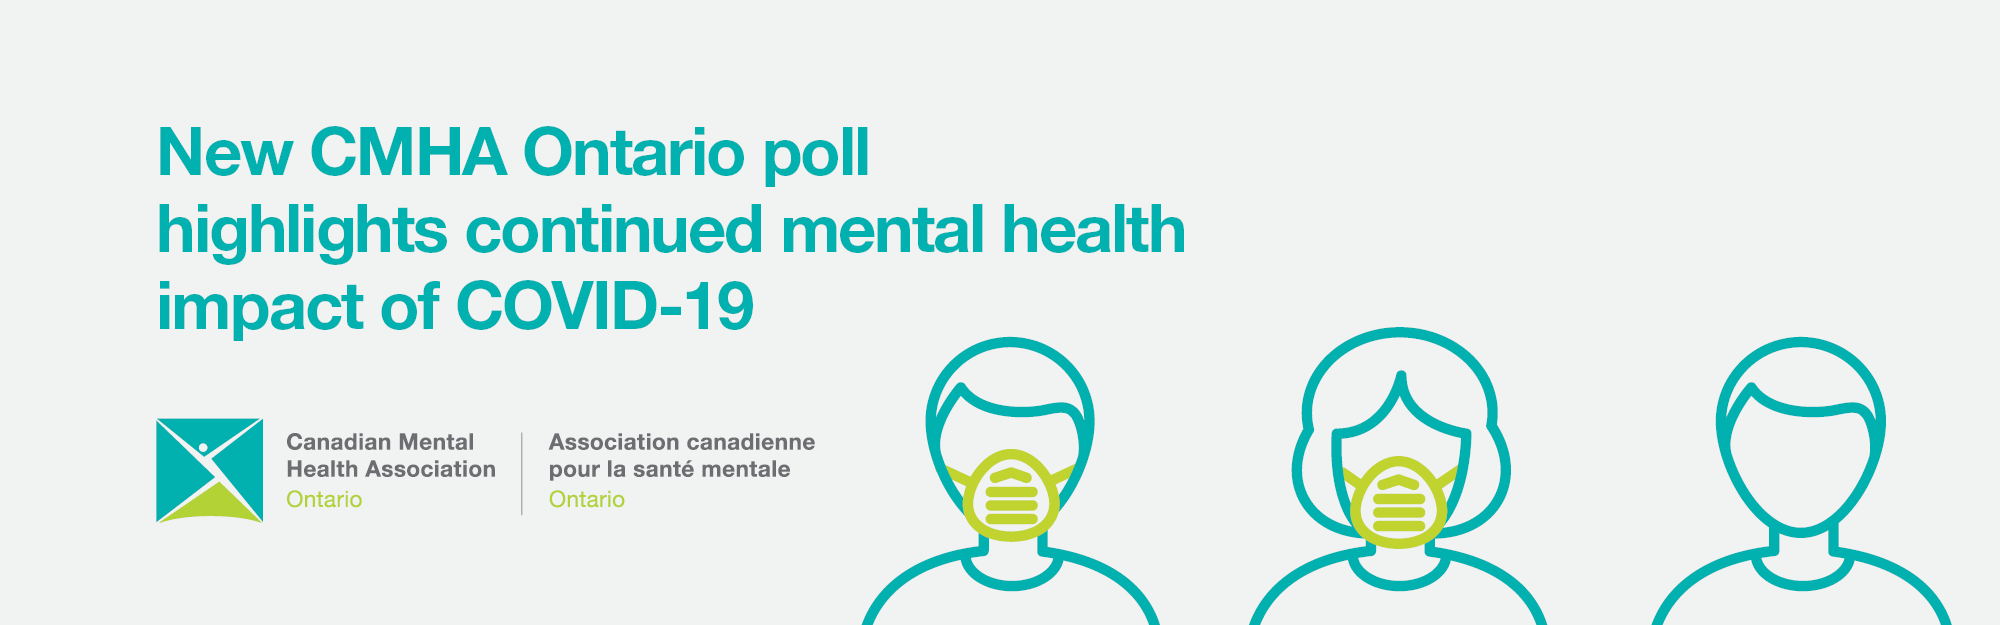 Most Ontarians fear second wave of COVID-19, worries linked to actions of others: CMHA poll